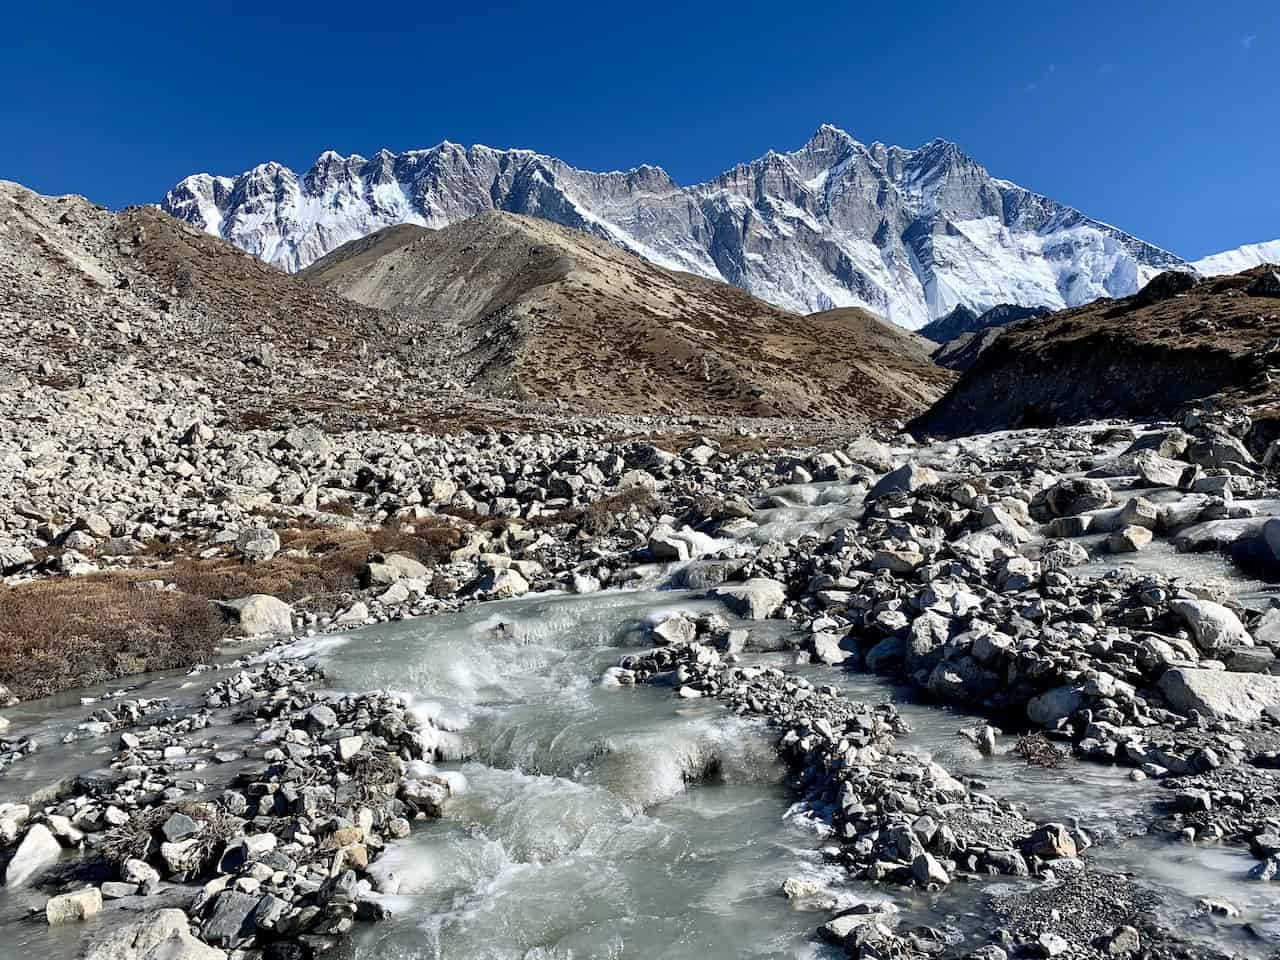 Dingboche to Chukhung Route